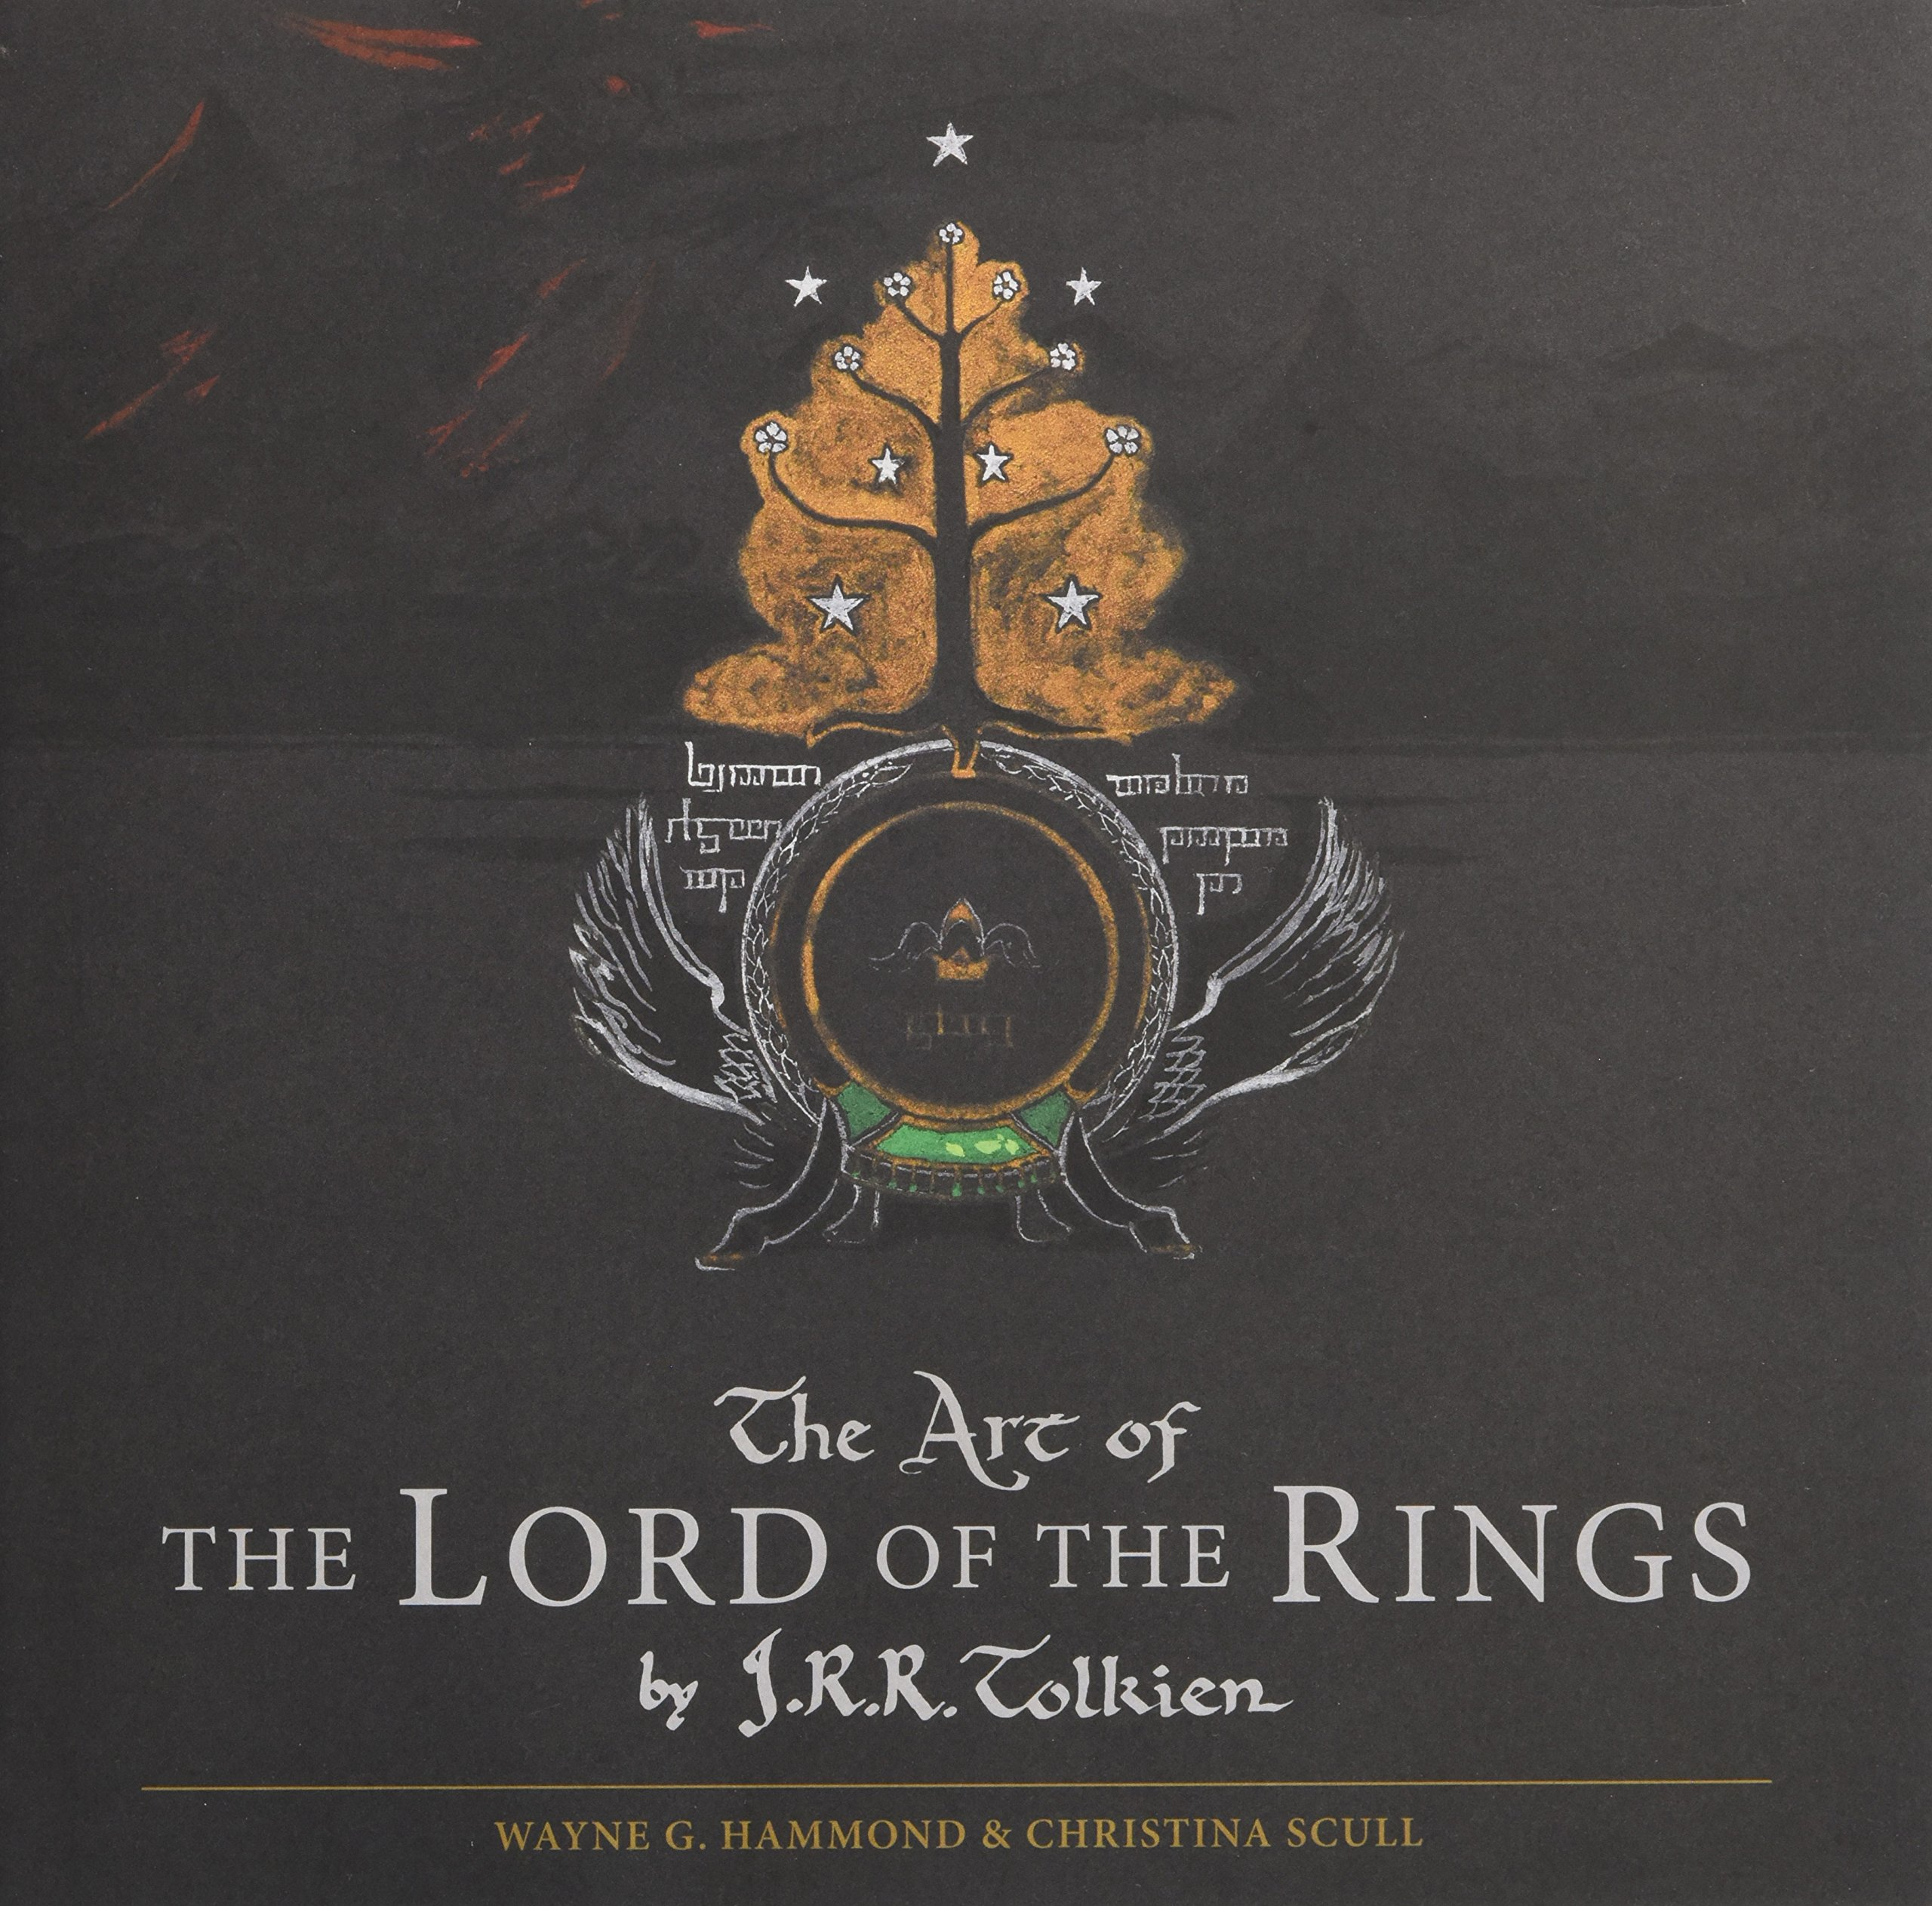 Return the lord the rings pdf king of of